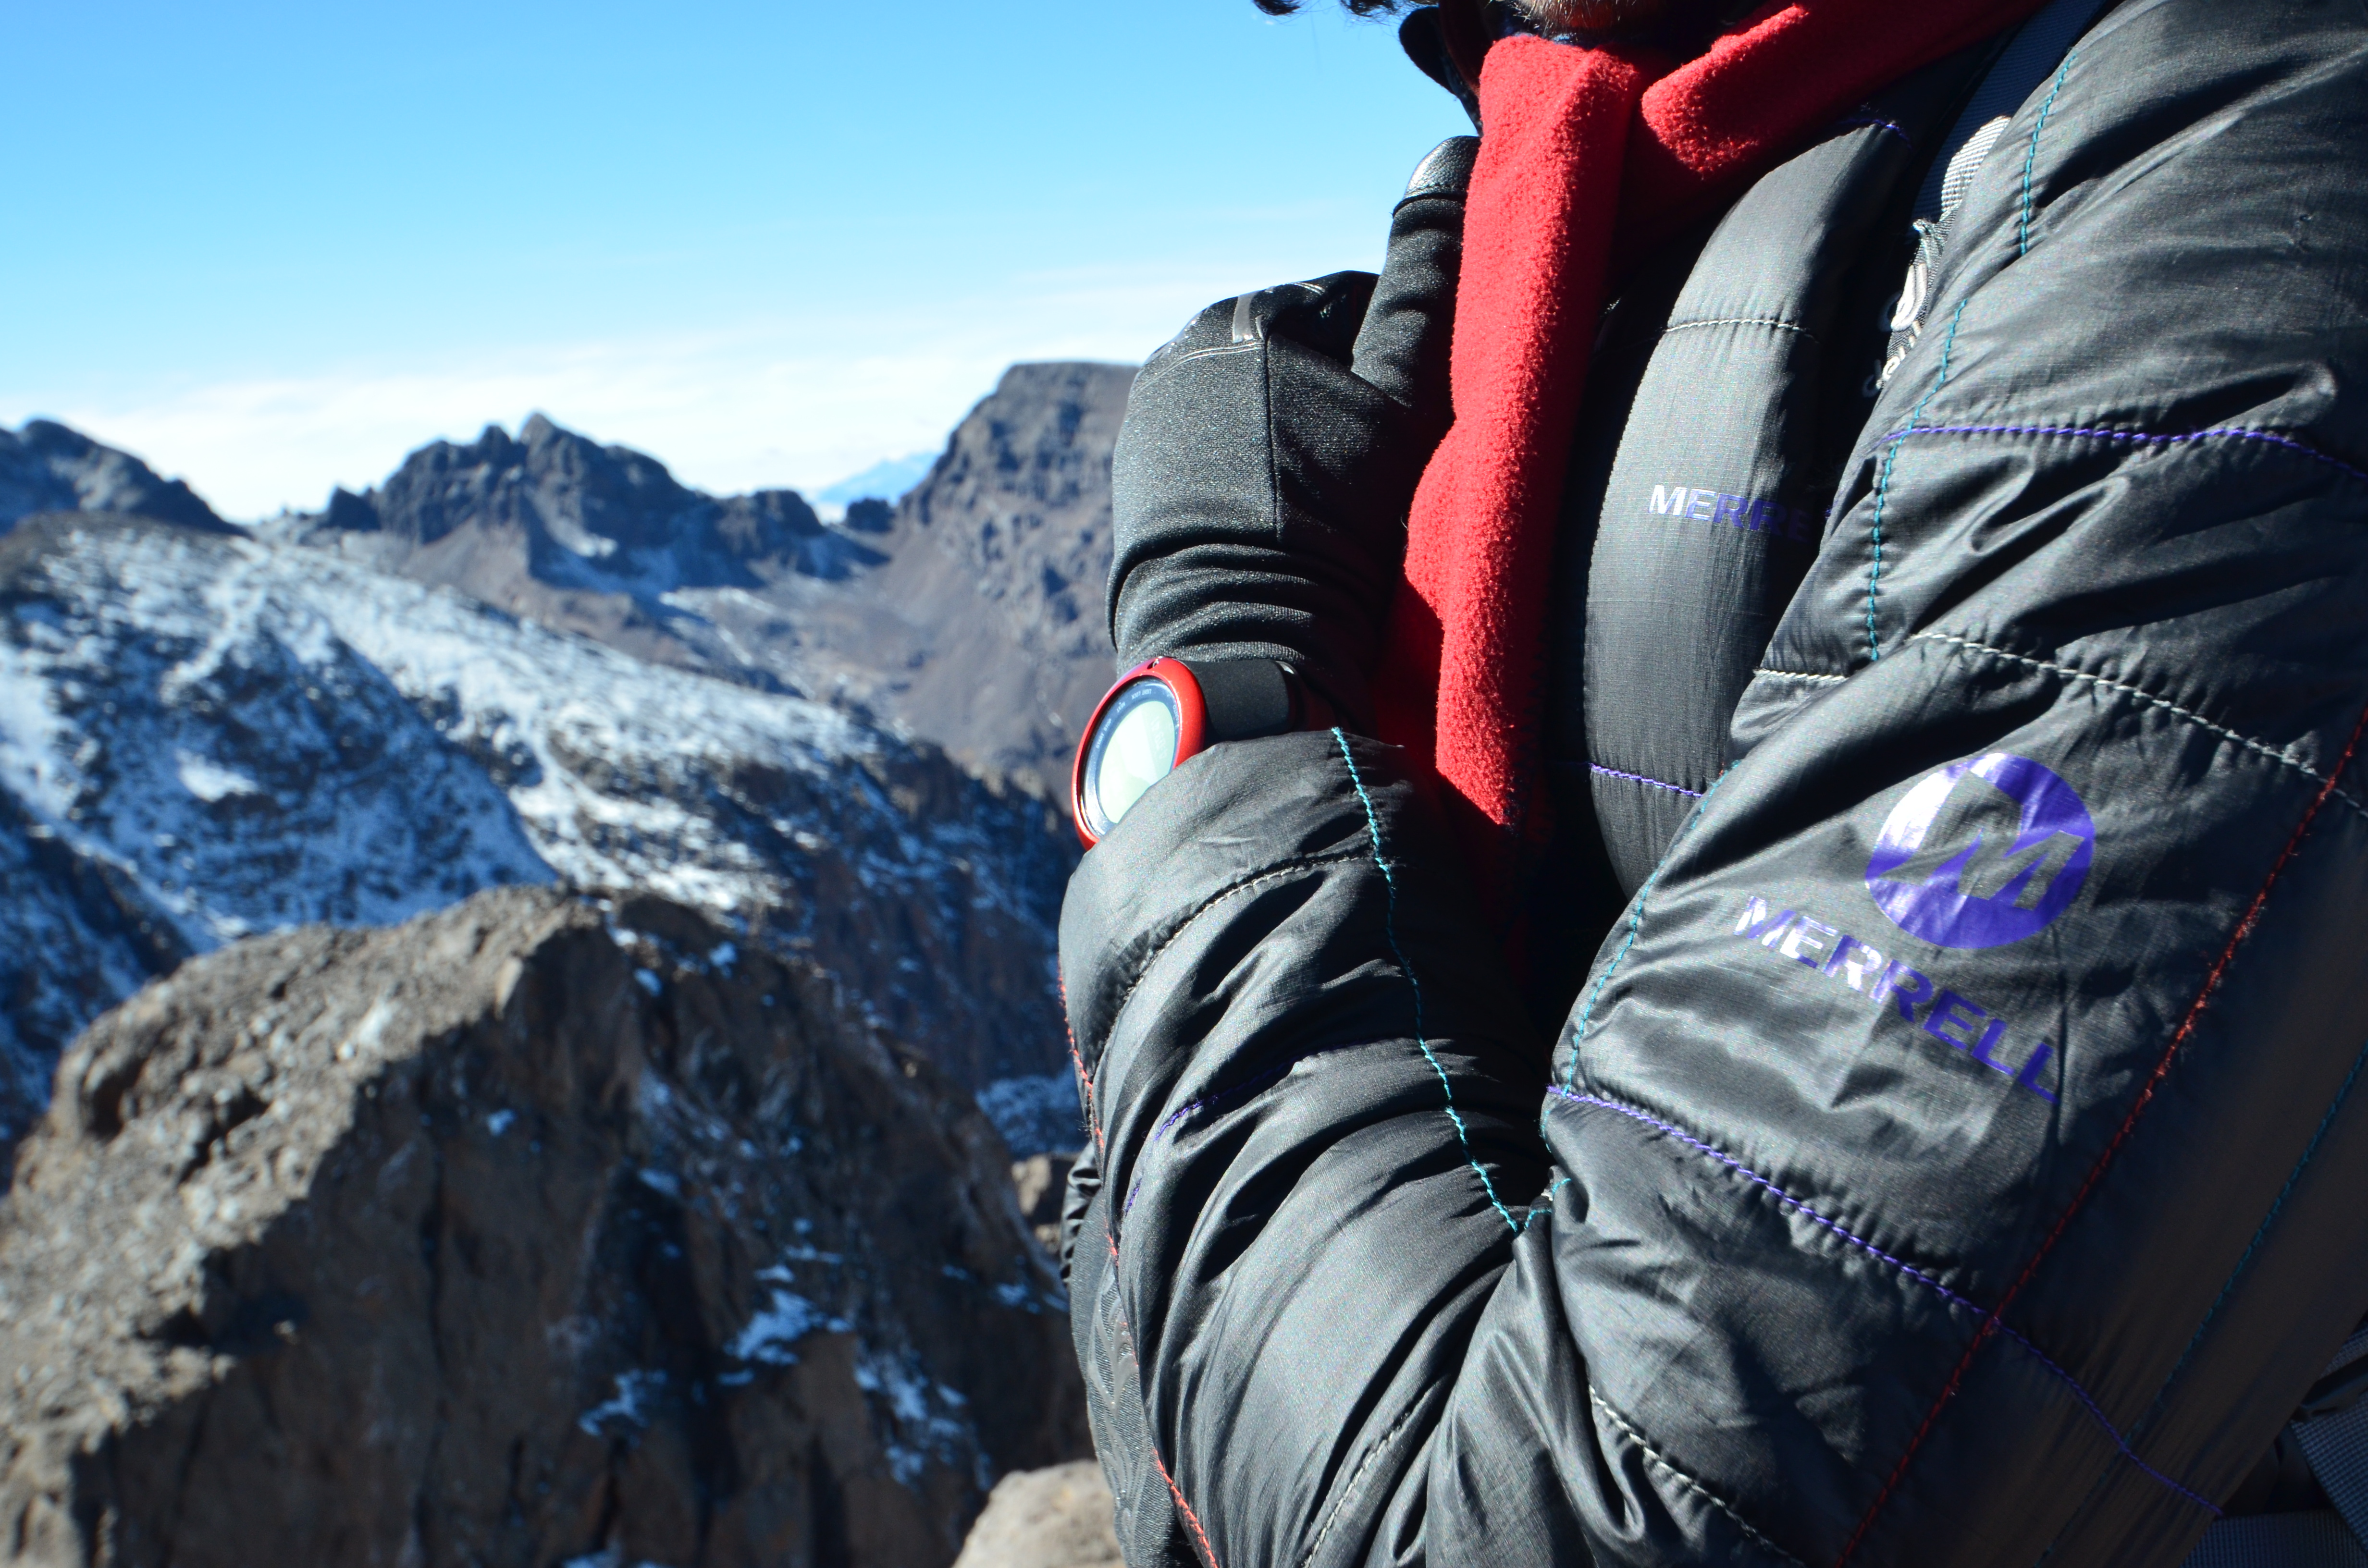 Checking the altitude with a Suunto Ambit 2S